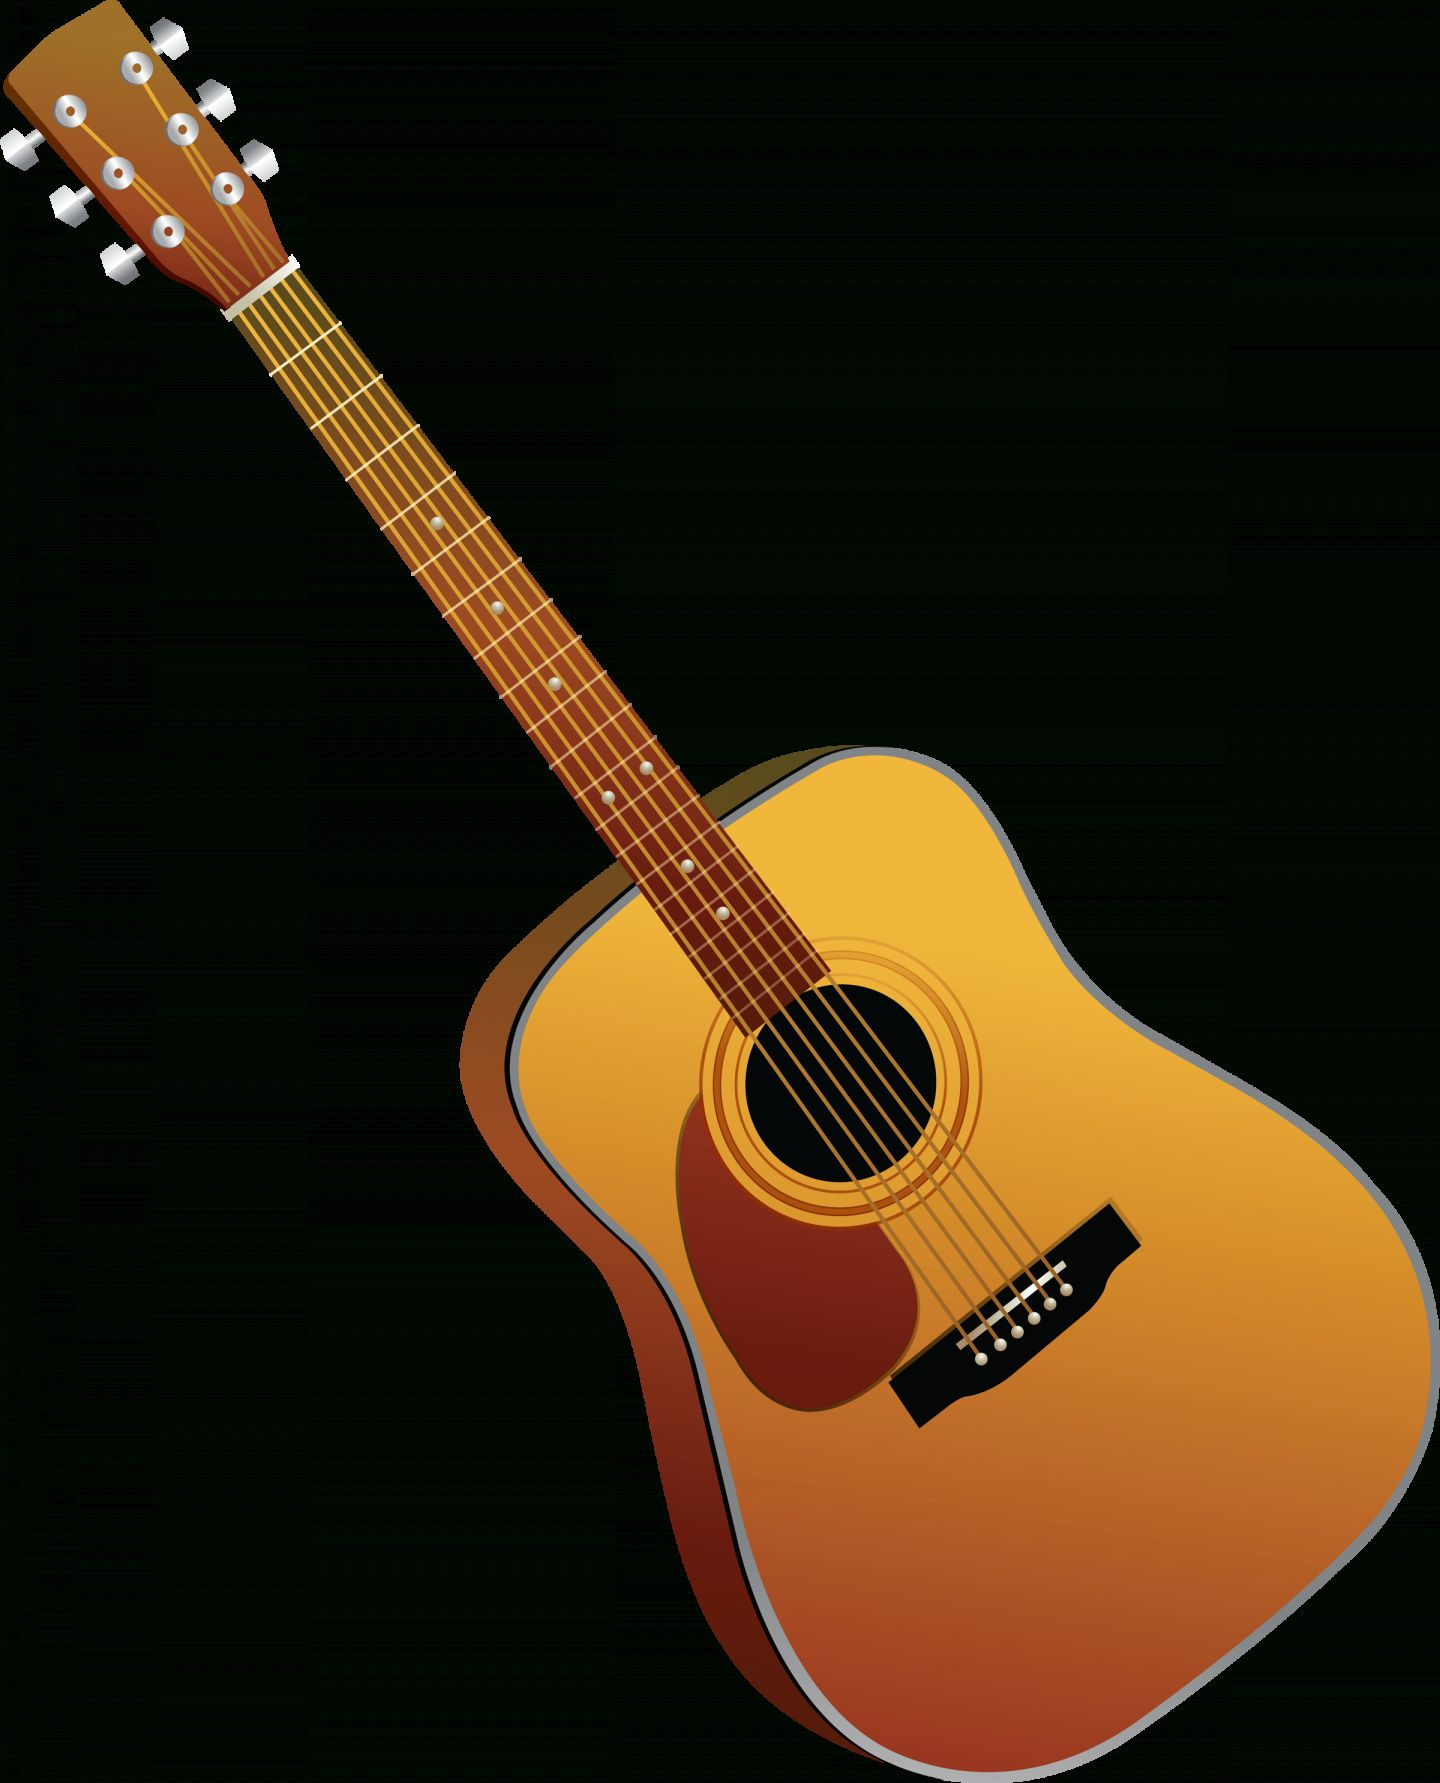 17+ Accoustic Guitar Png Cartoon Check more at https